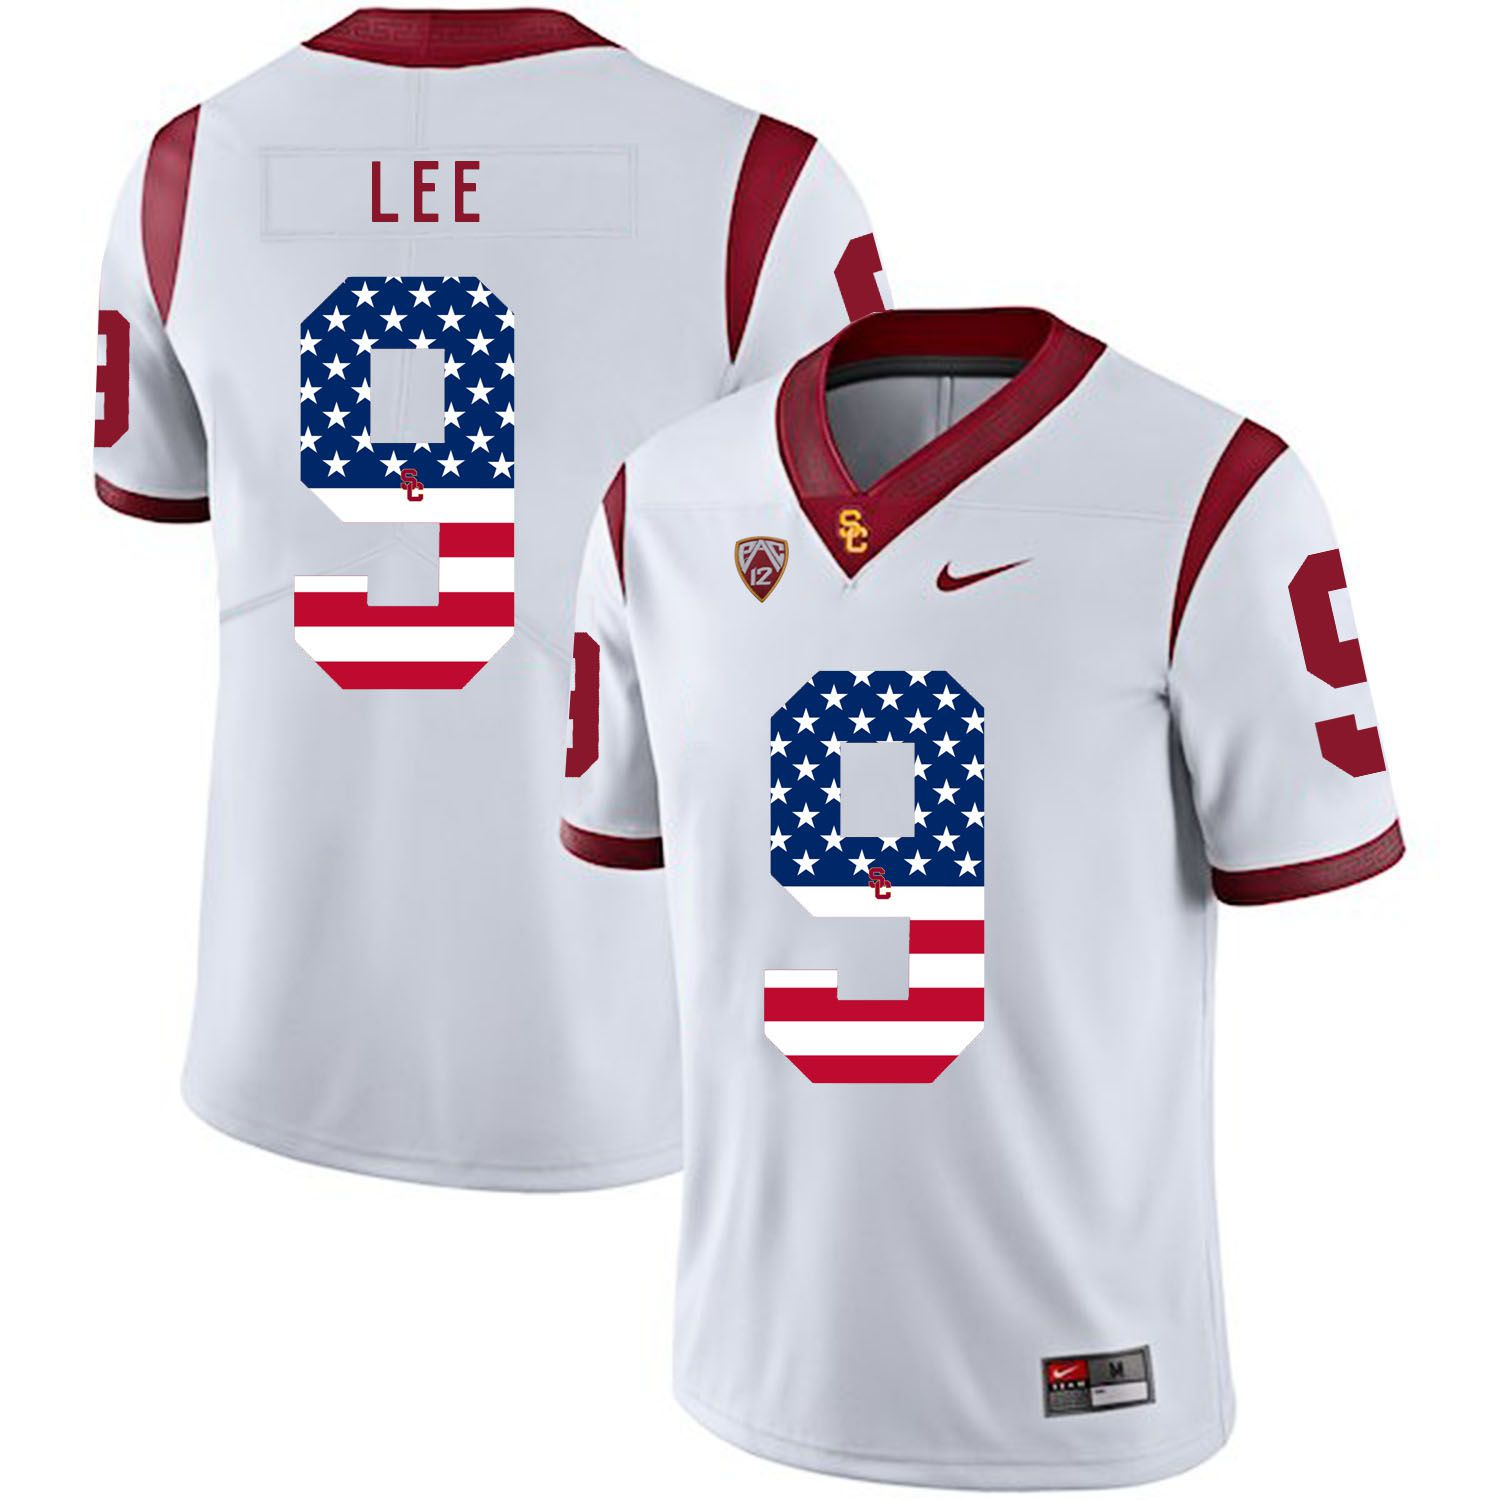 Men USC Trojans 9 Lee White Flag Customized NCAA Jerseys